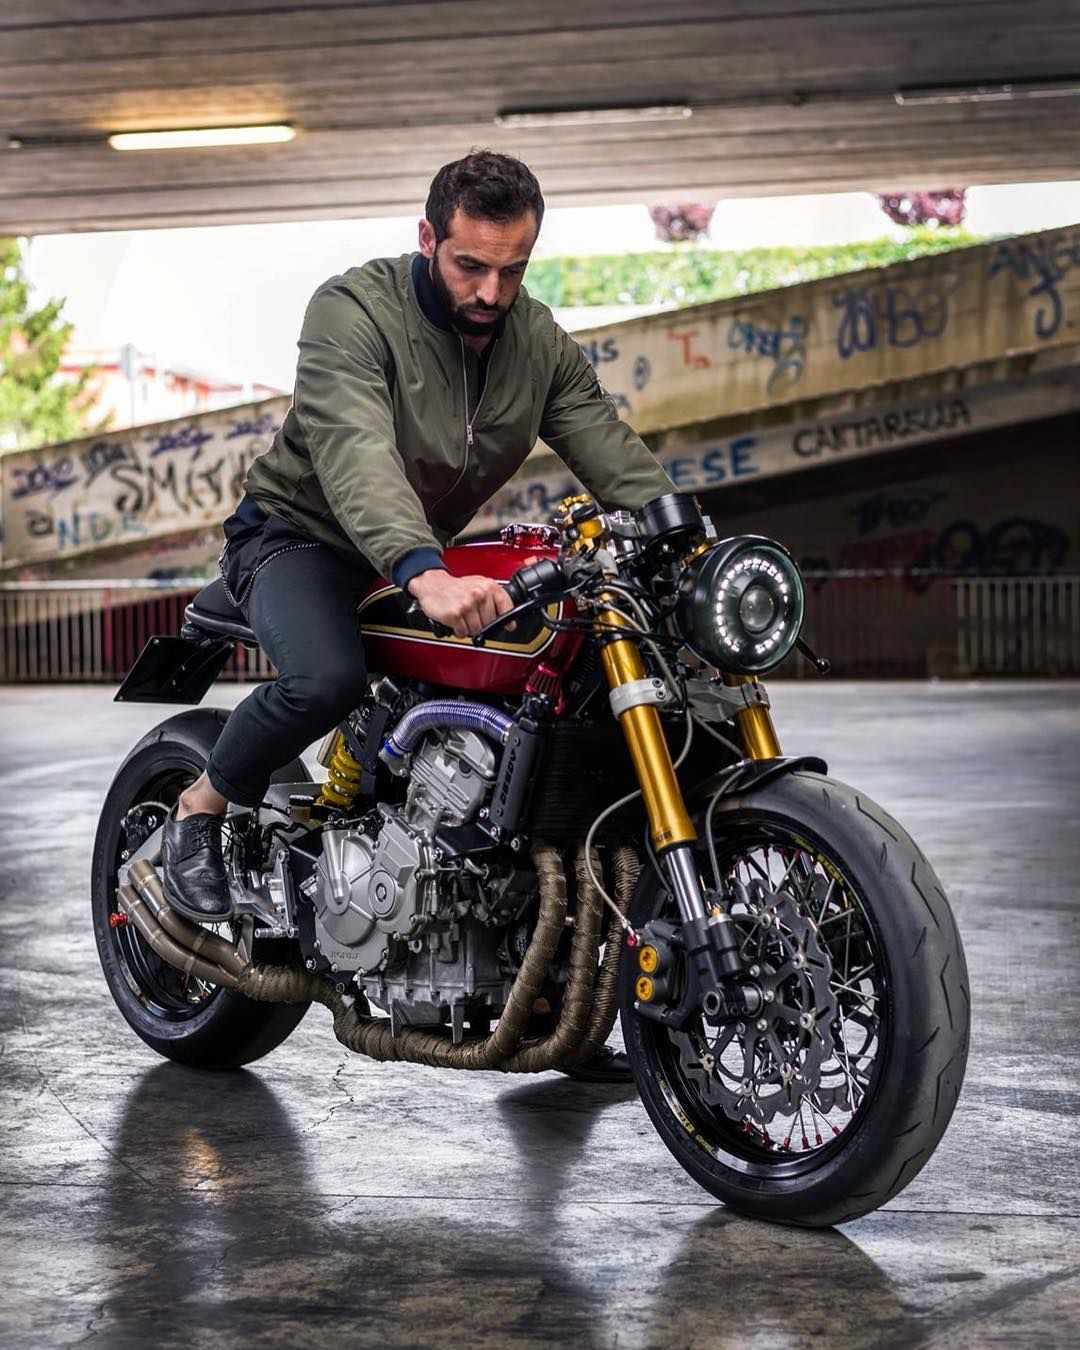 It S Time Of Caferacer Riding Honda Hornet Special